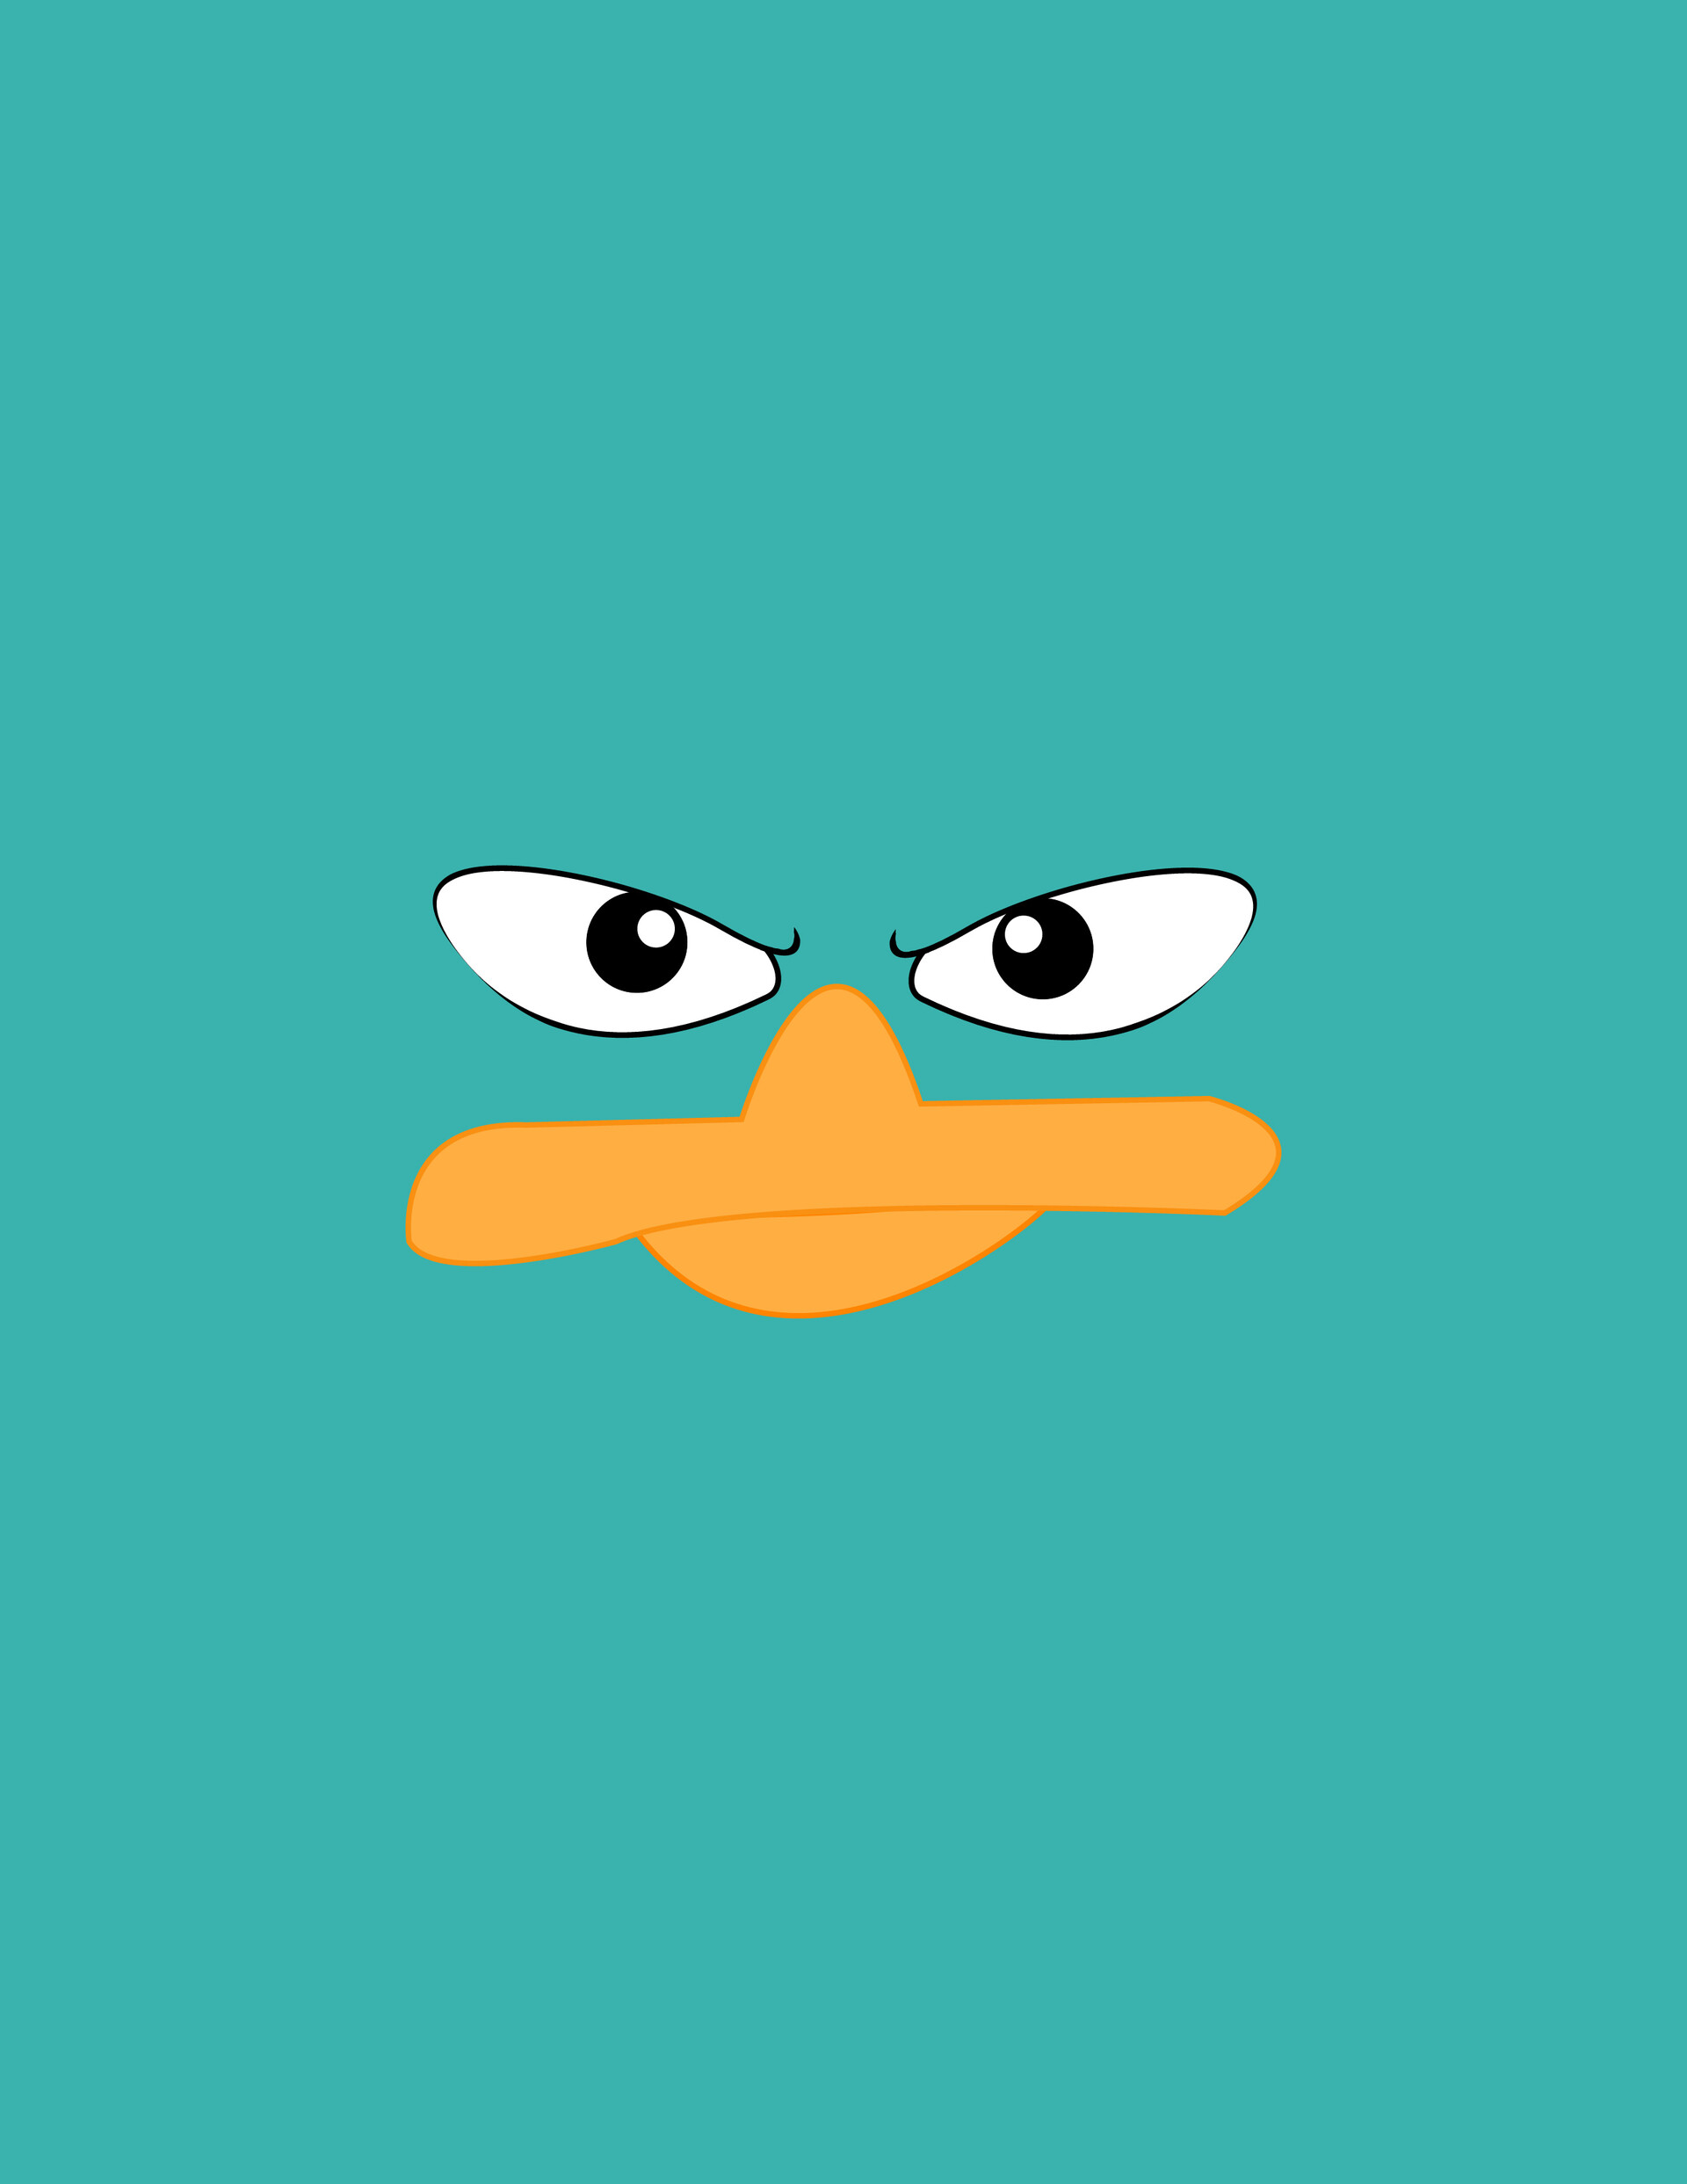 94981 download wallpaper Vector, Duck, Muzzle, Beak, Eyes screensavers and pictures for free